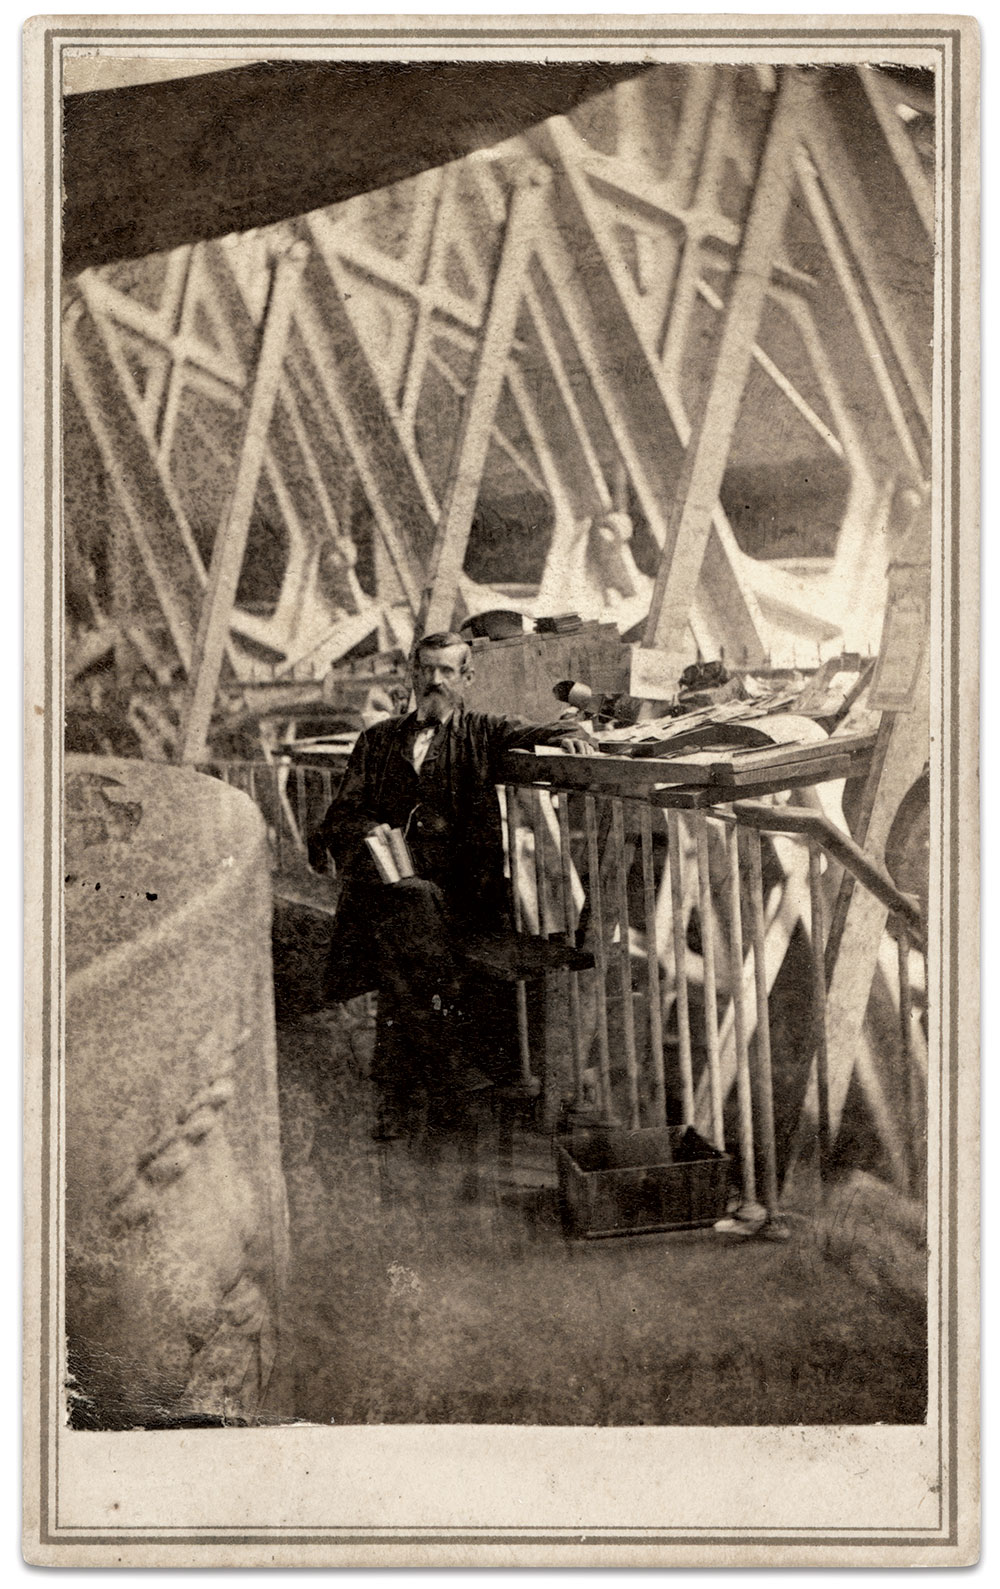 Officer John P. Gulick inside the Capitol Dome. Carte de visite by William H. Bell and A.F. Hall of Washington, D.C. Ronald S. Coddington Collection.